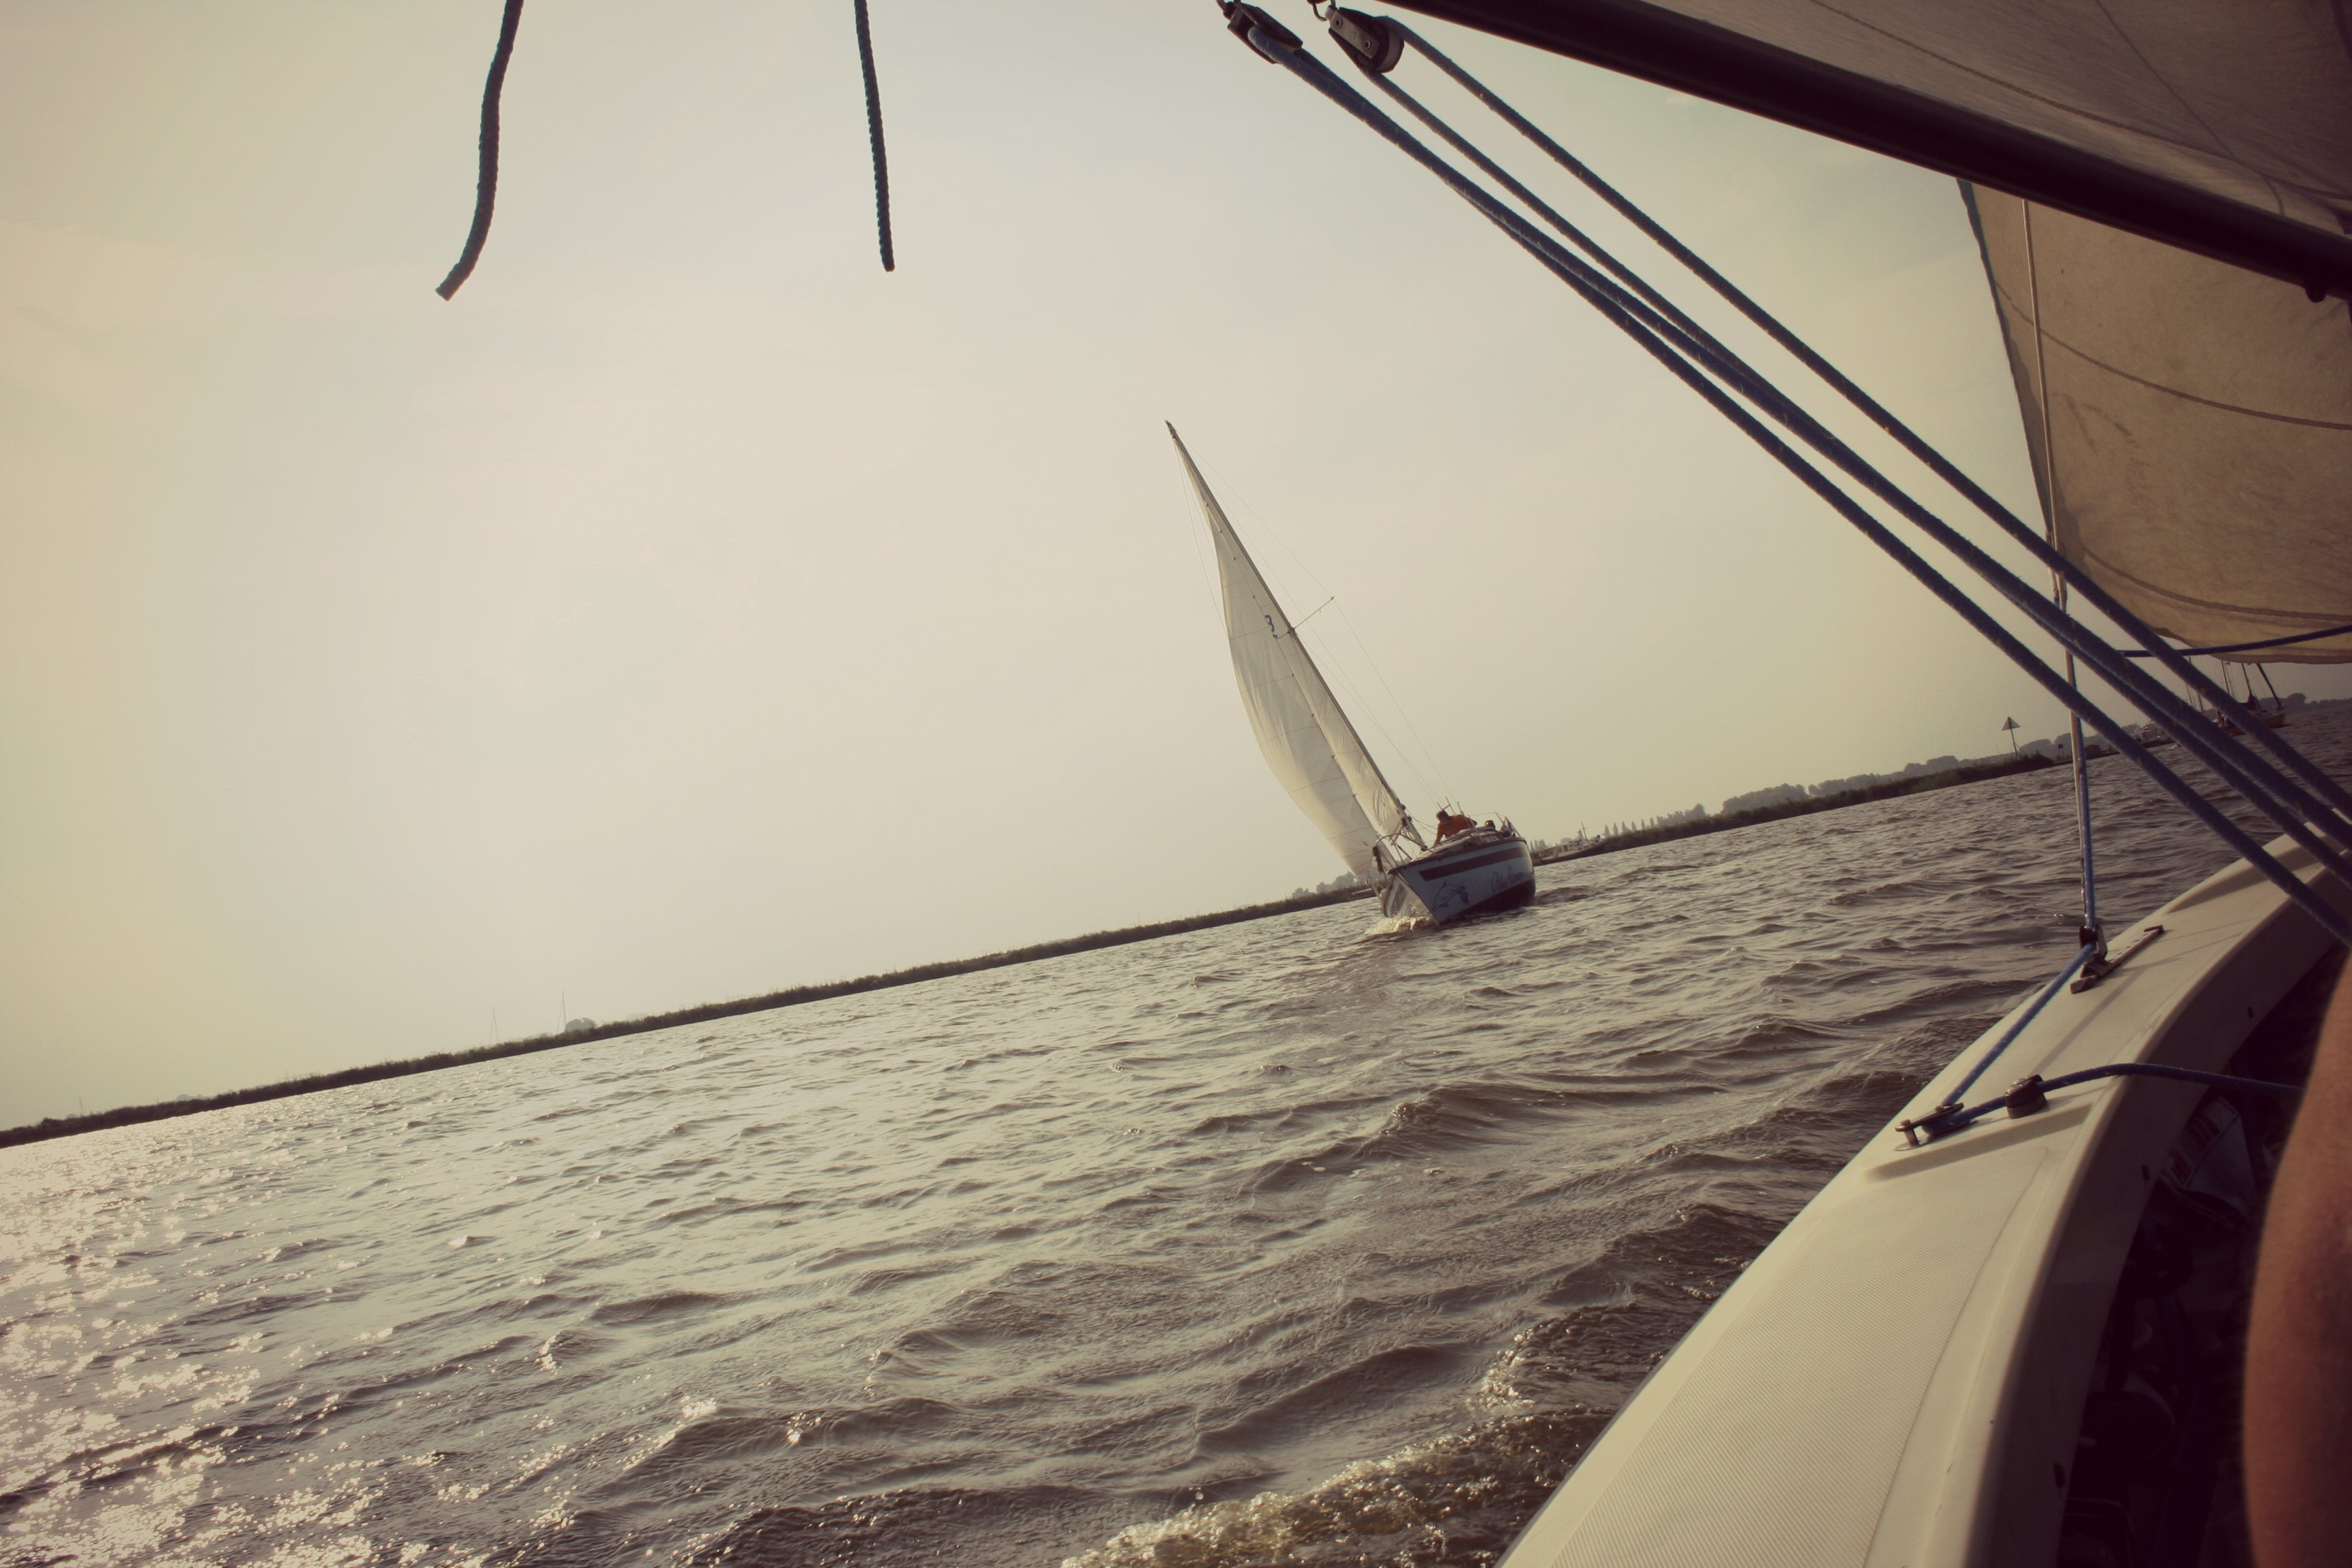 Sailing in Friesland